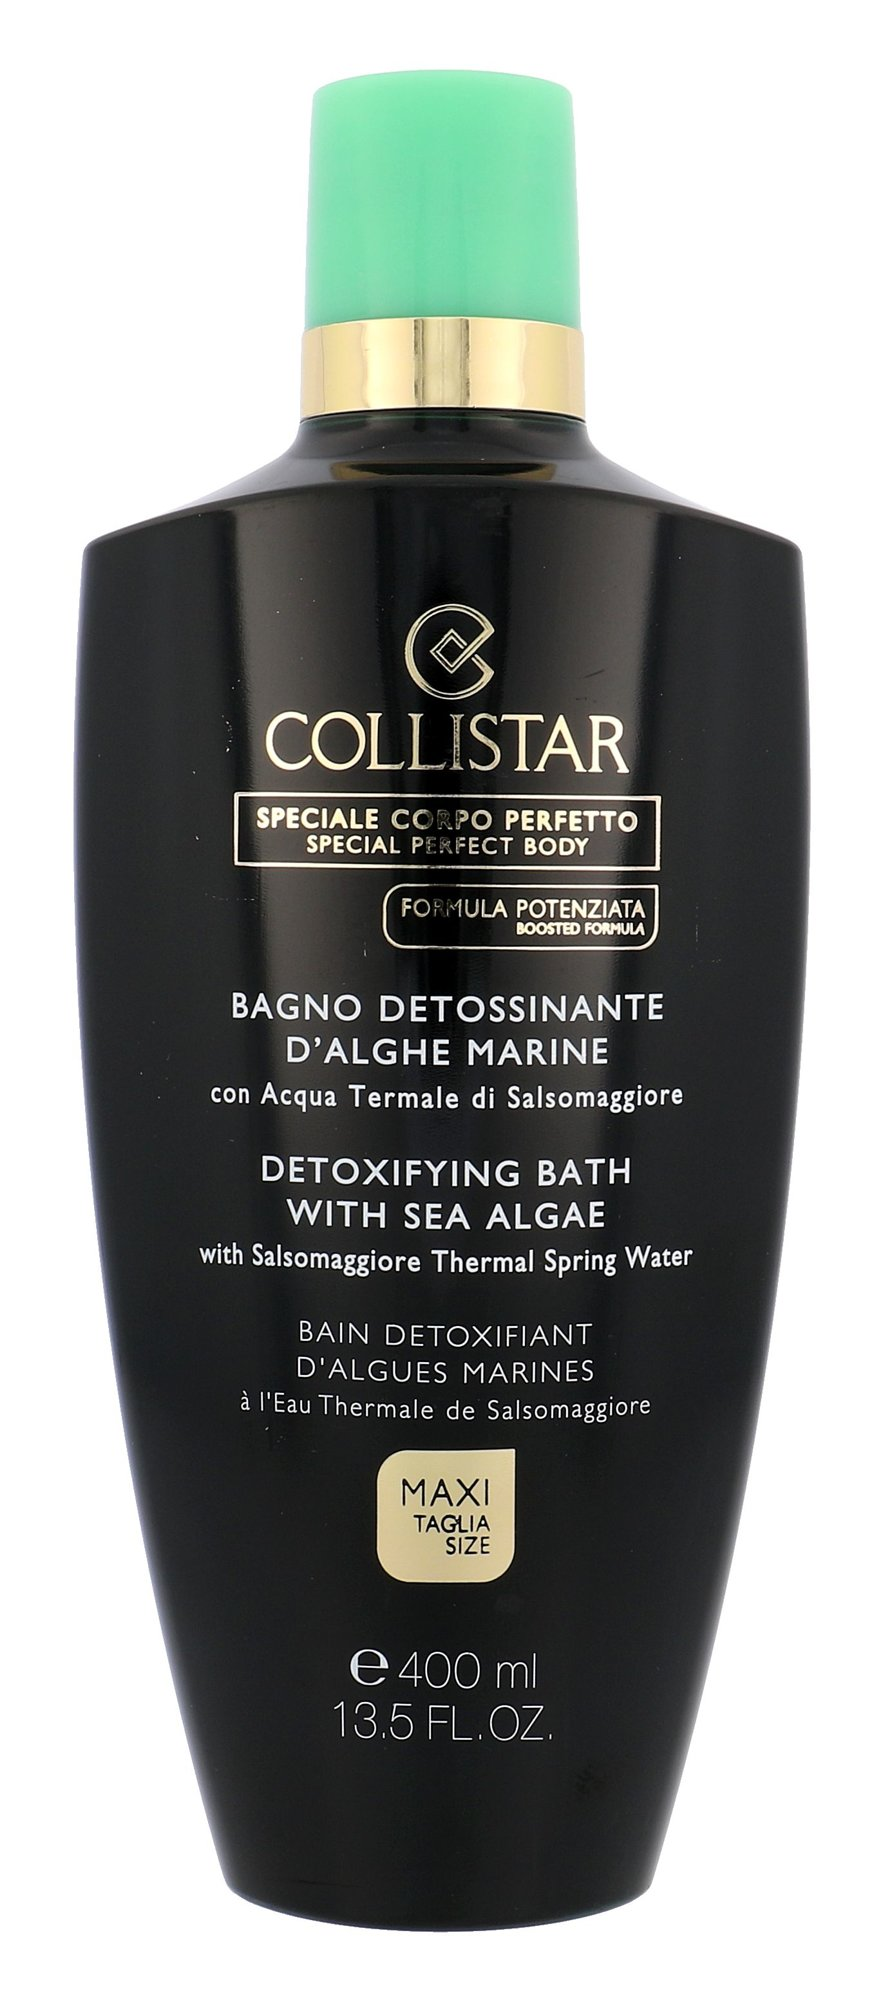 Collistar Detoxifying Bath With Sea Algae Cosmetic 400ml